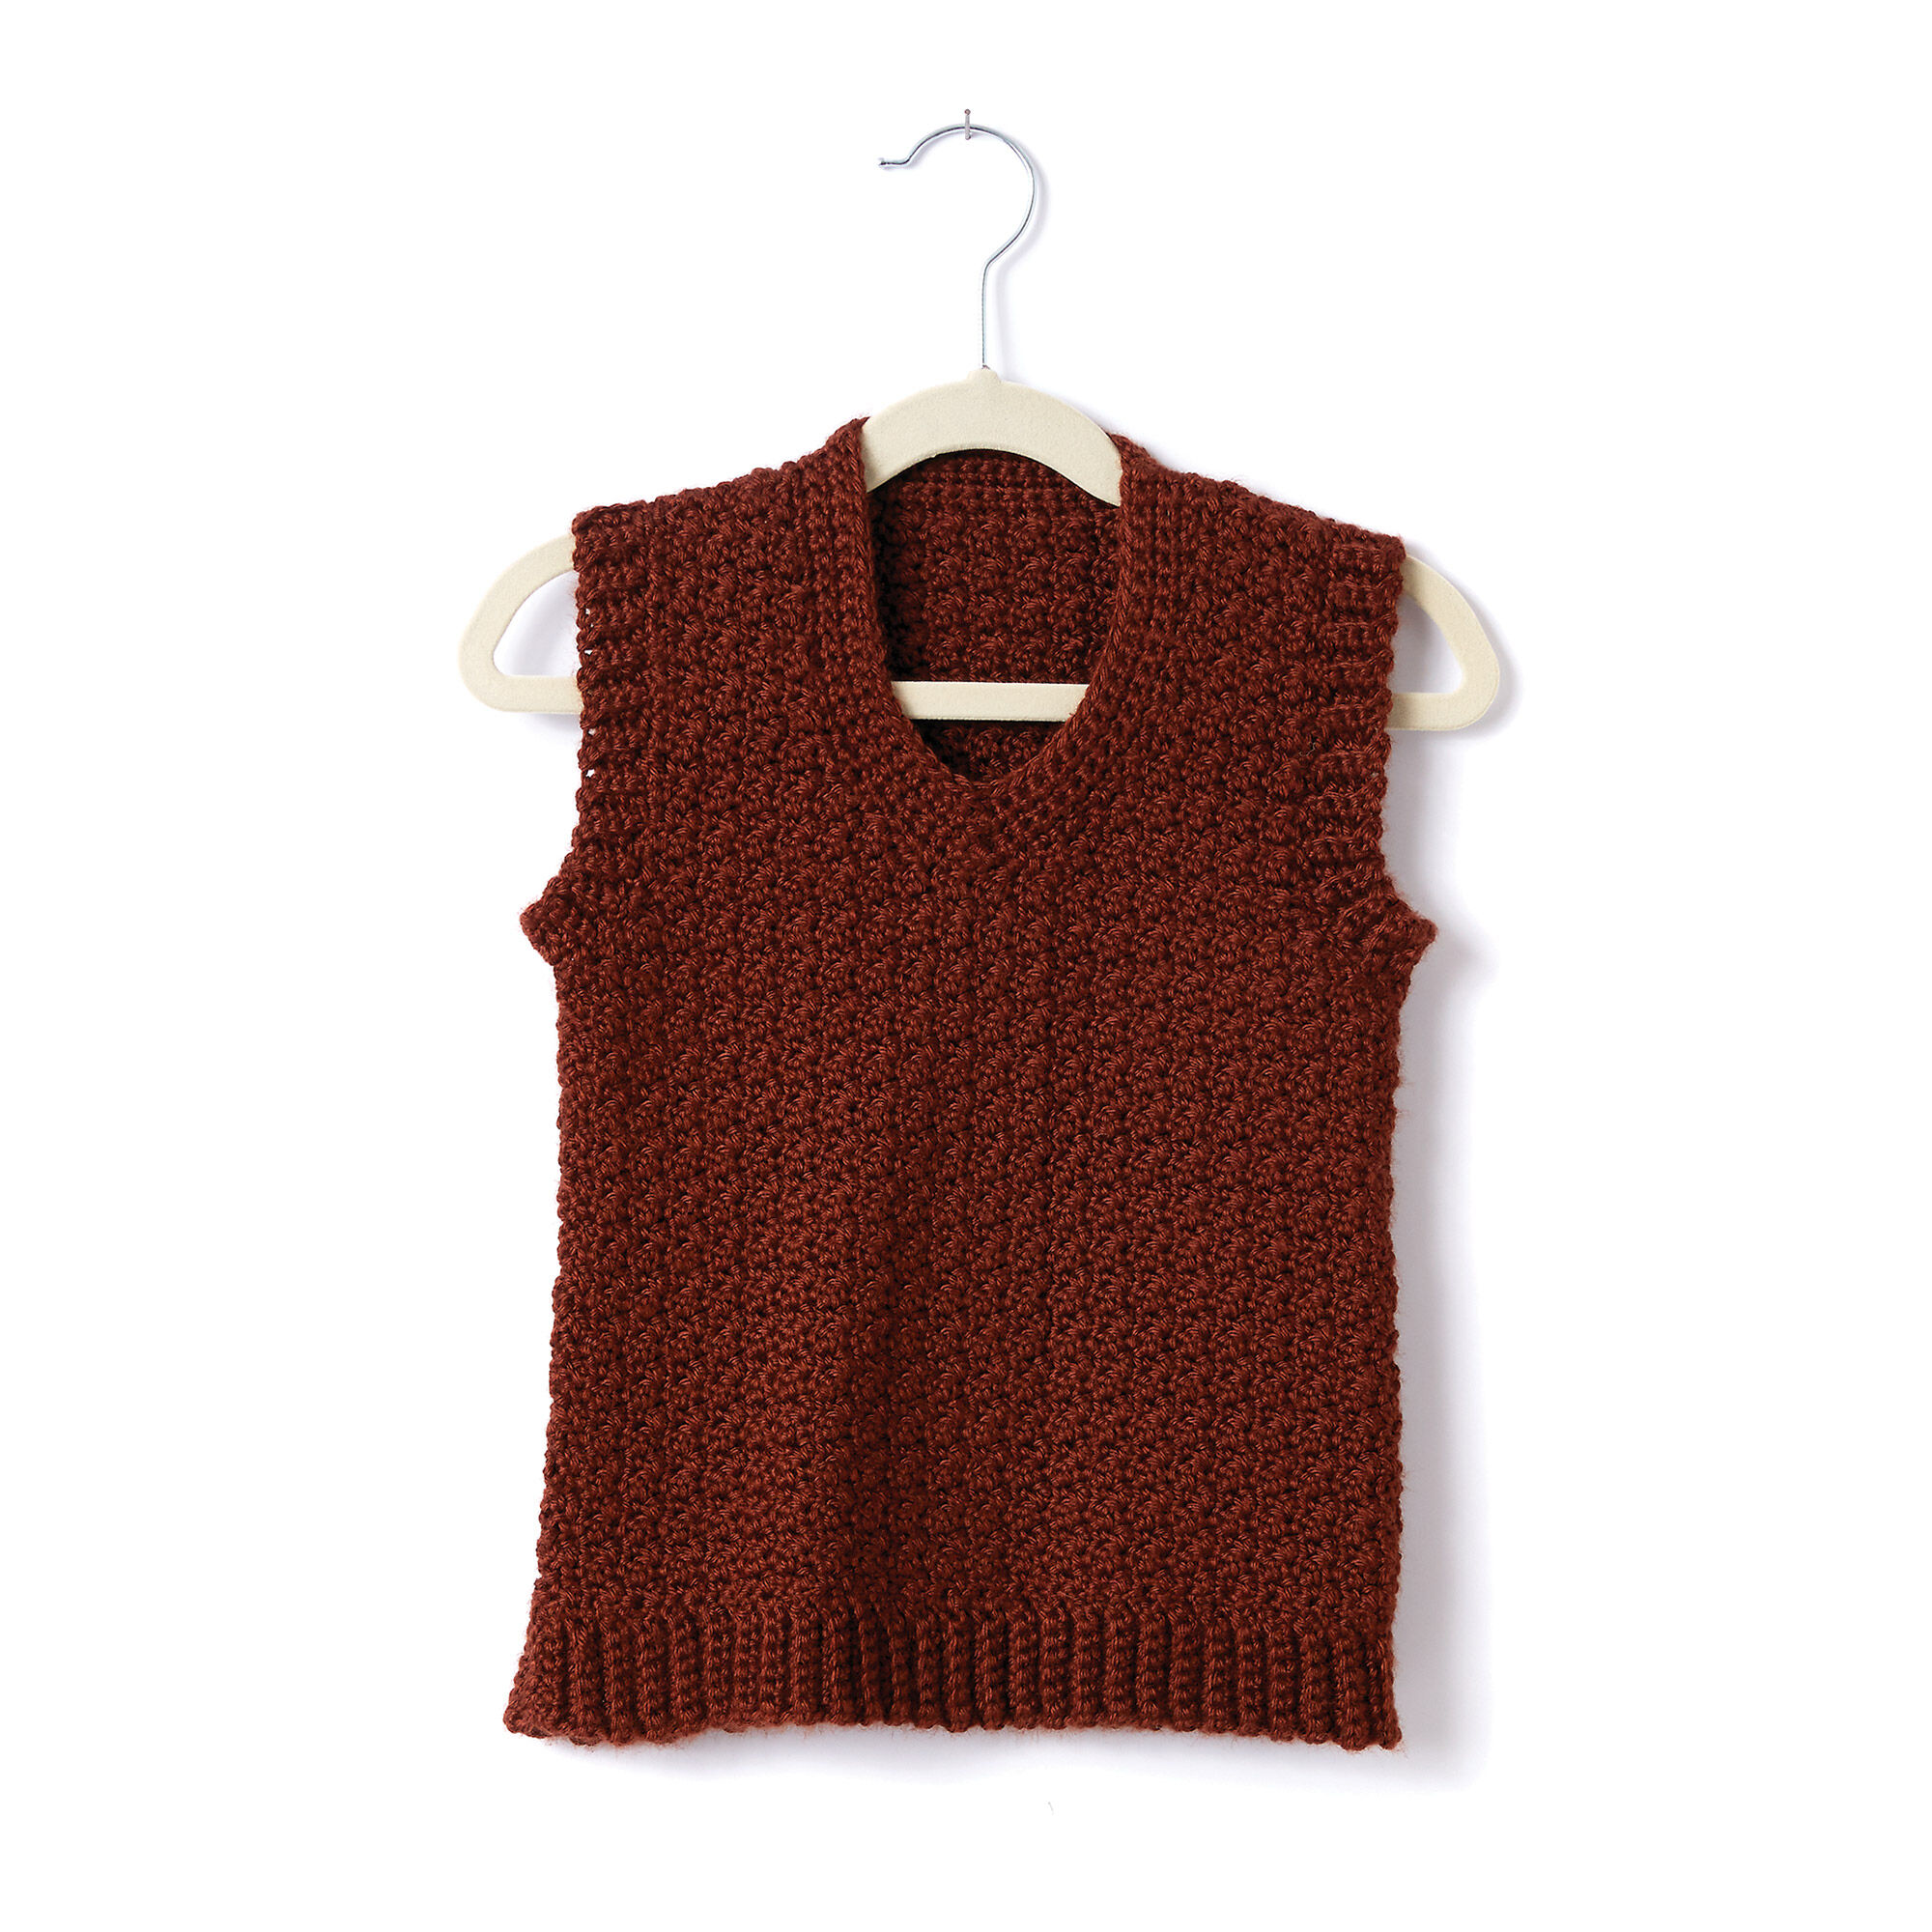 Caron Adult Crochet V-Neck Vest, XS/S | Yarnspirations